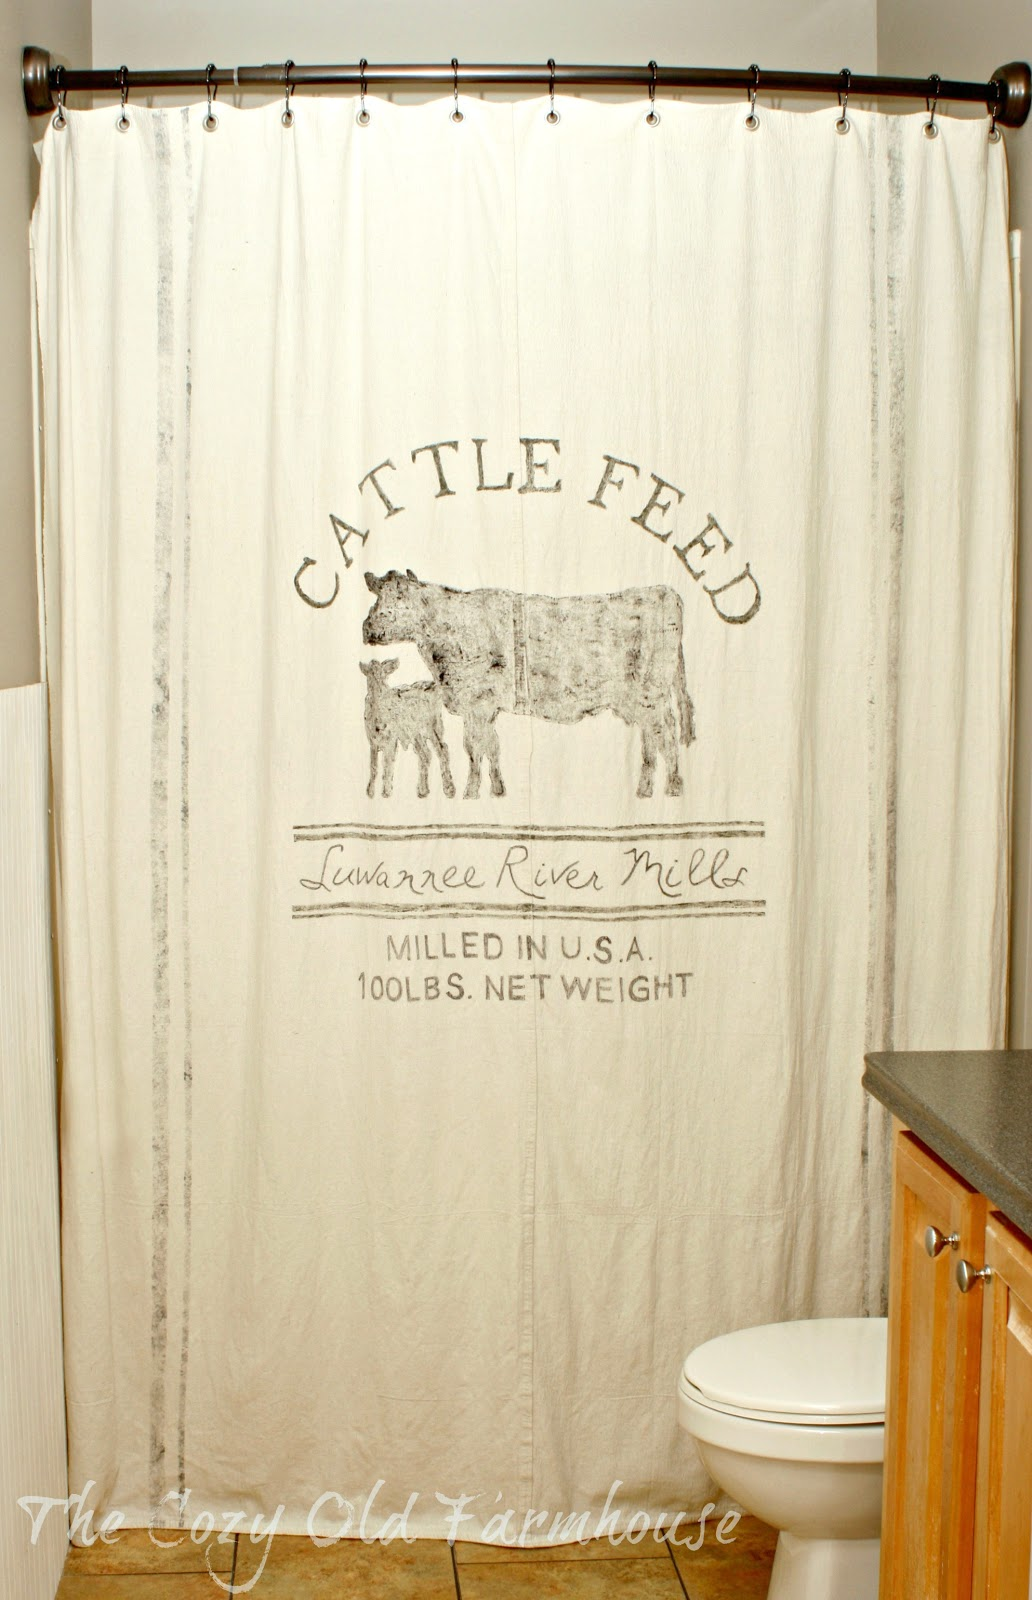 The Cozy Old Farmhouse Painters Dropcloth Becomes DIY Grain Sack Shower Curtain